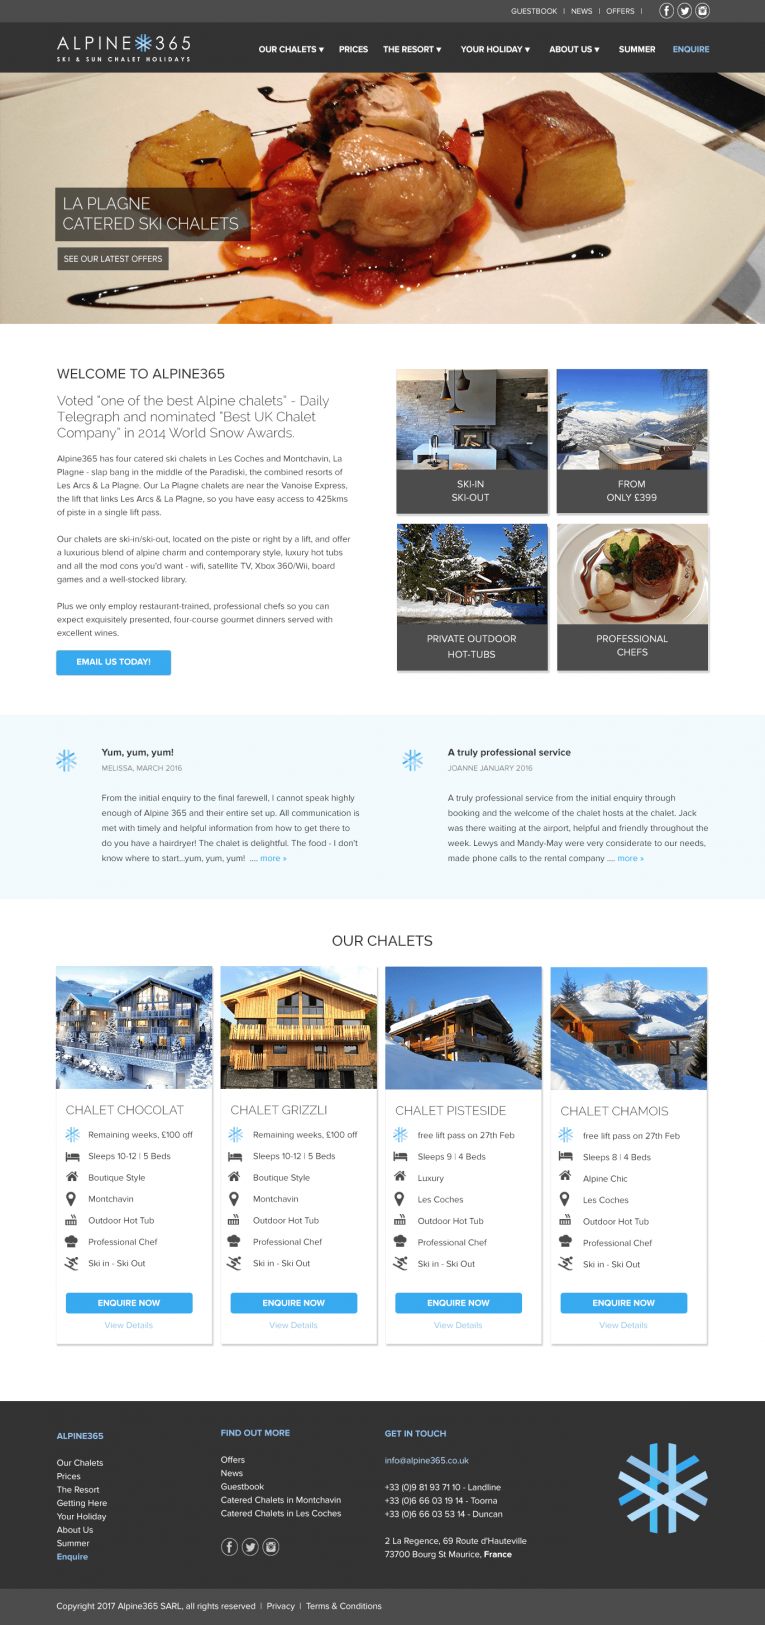 Ski Chalets Holiday Rentals Home Design